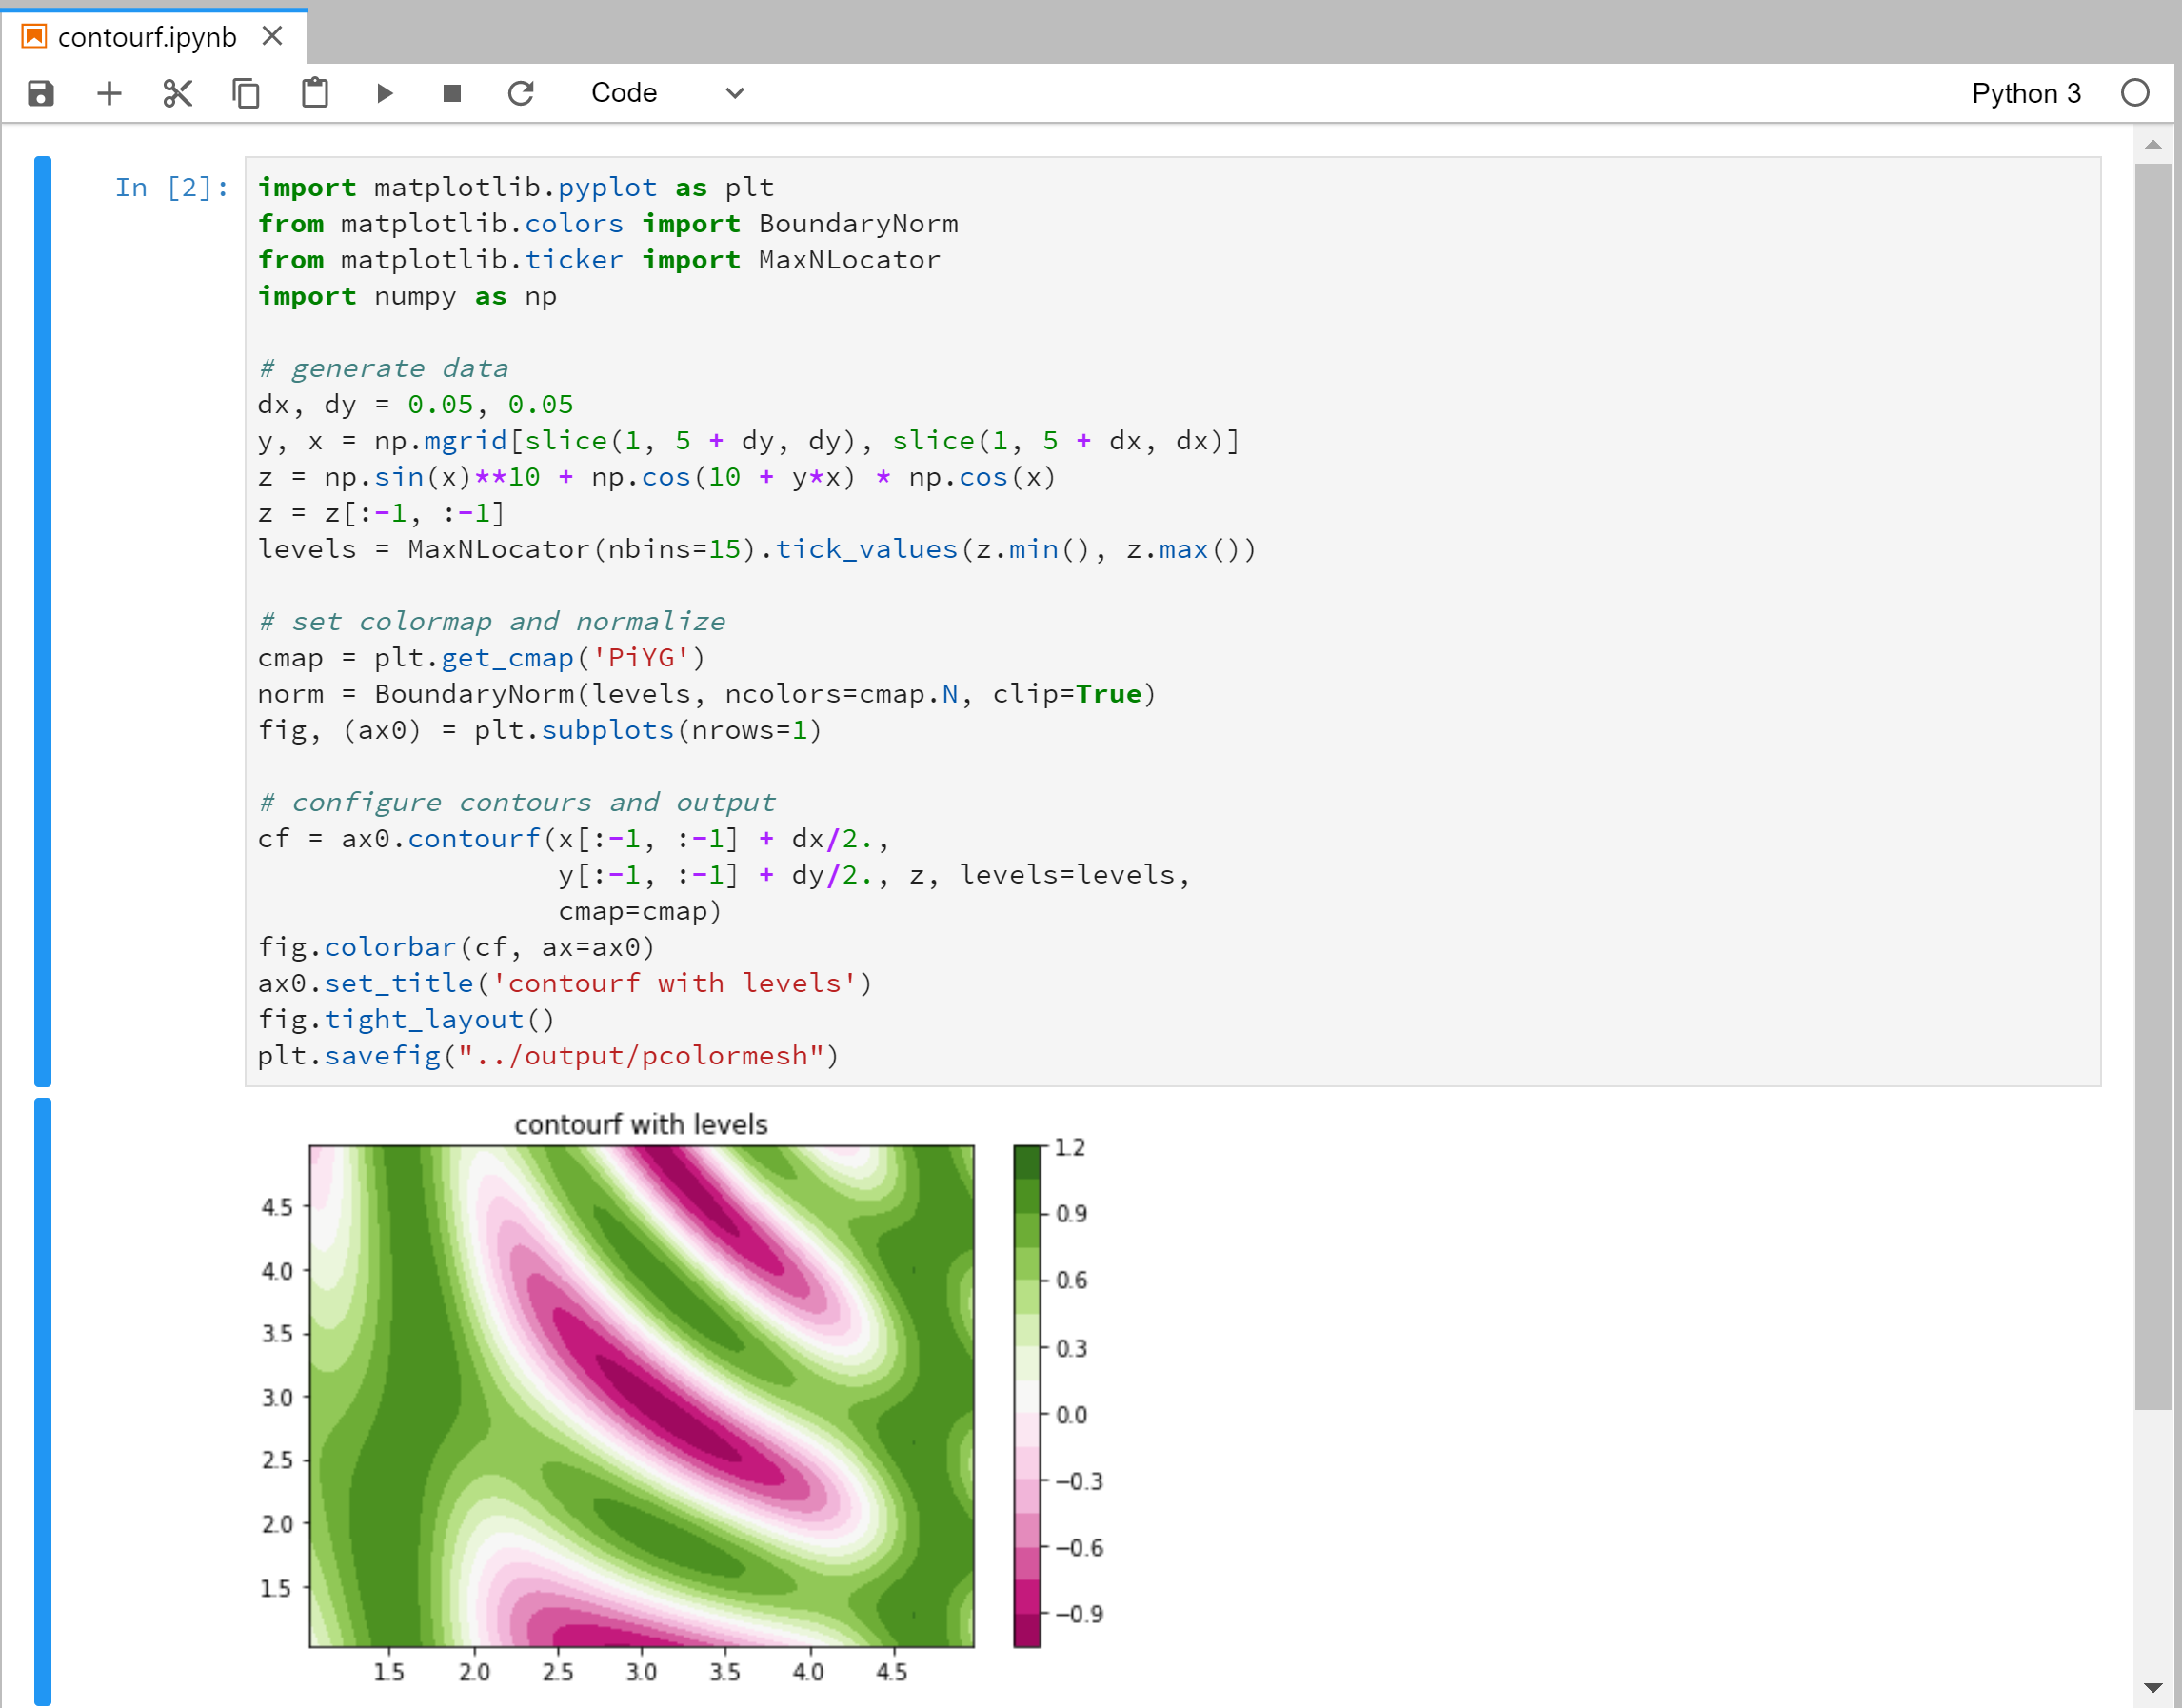 The executed example code in a Jupyter notebook